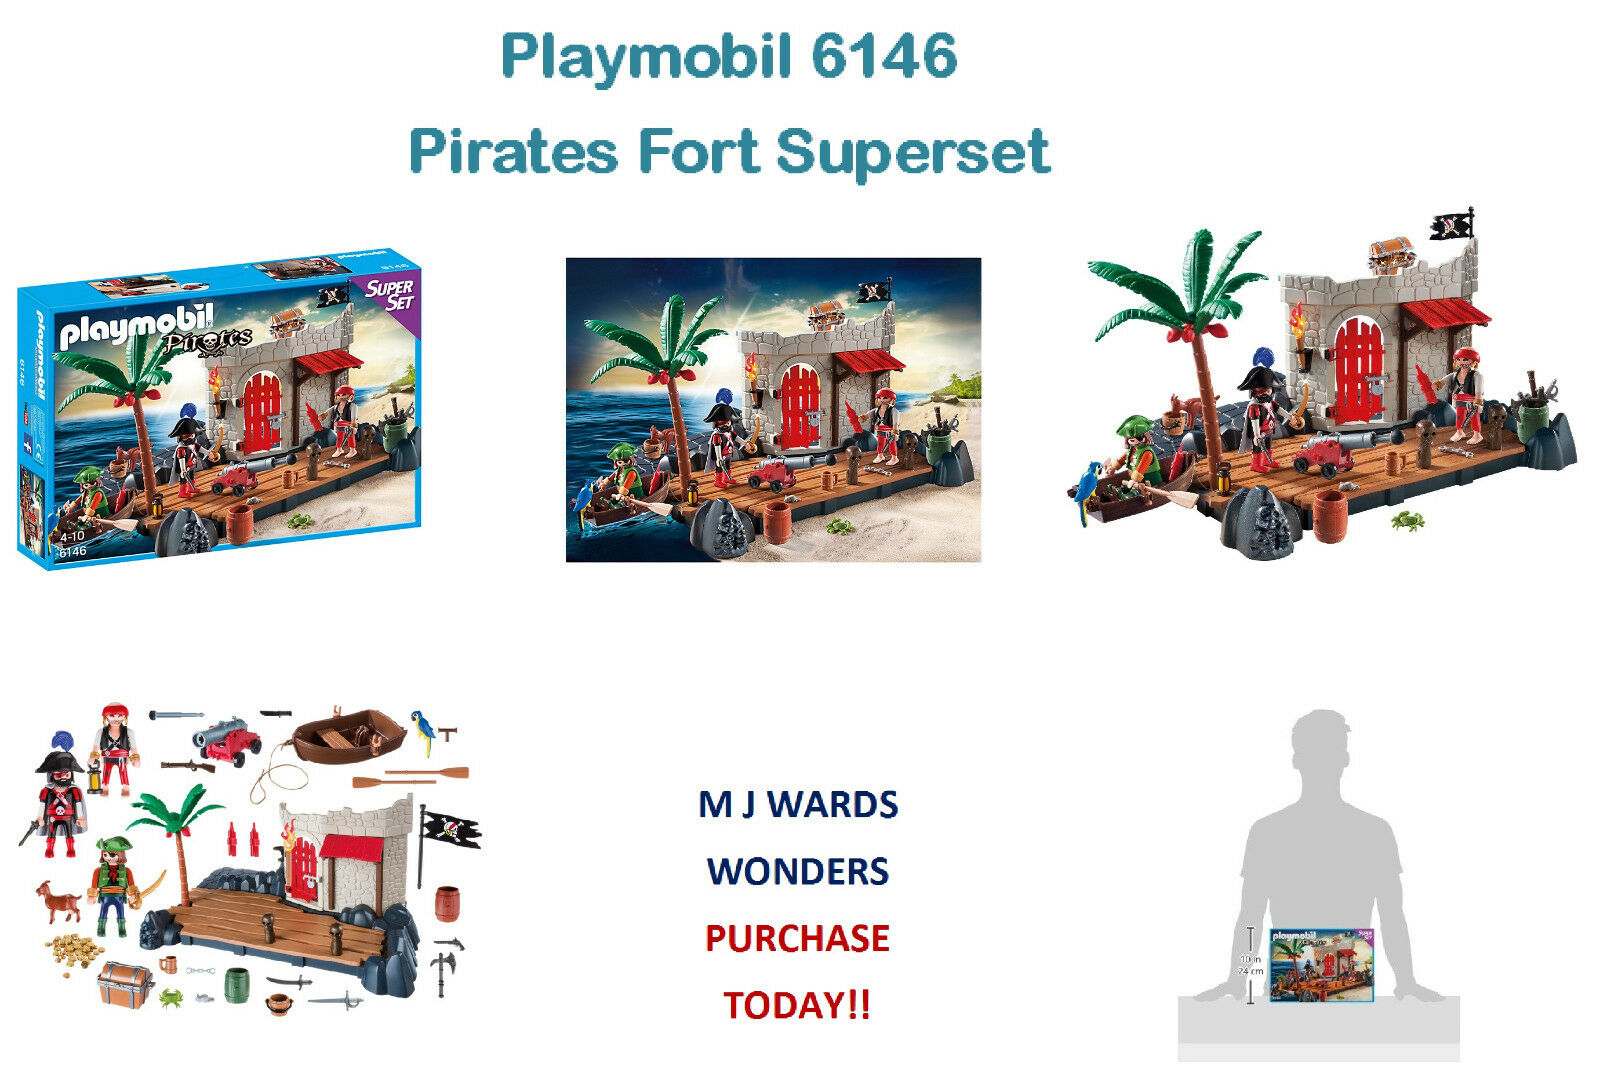 Playmobil 6146 - Pirates Fort Superset – Super Set - Dolls And Playsets